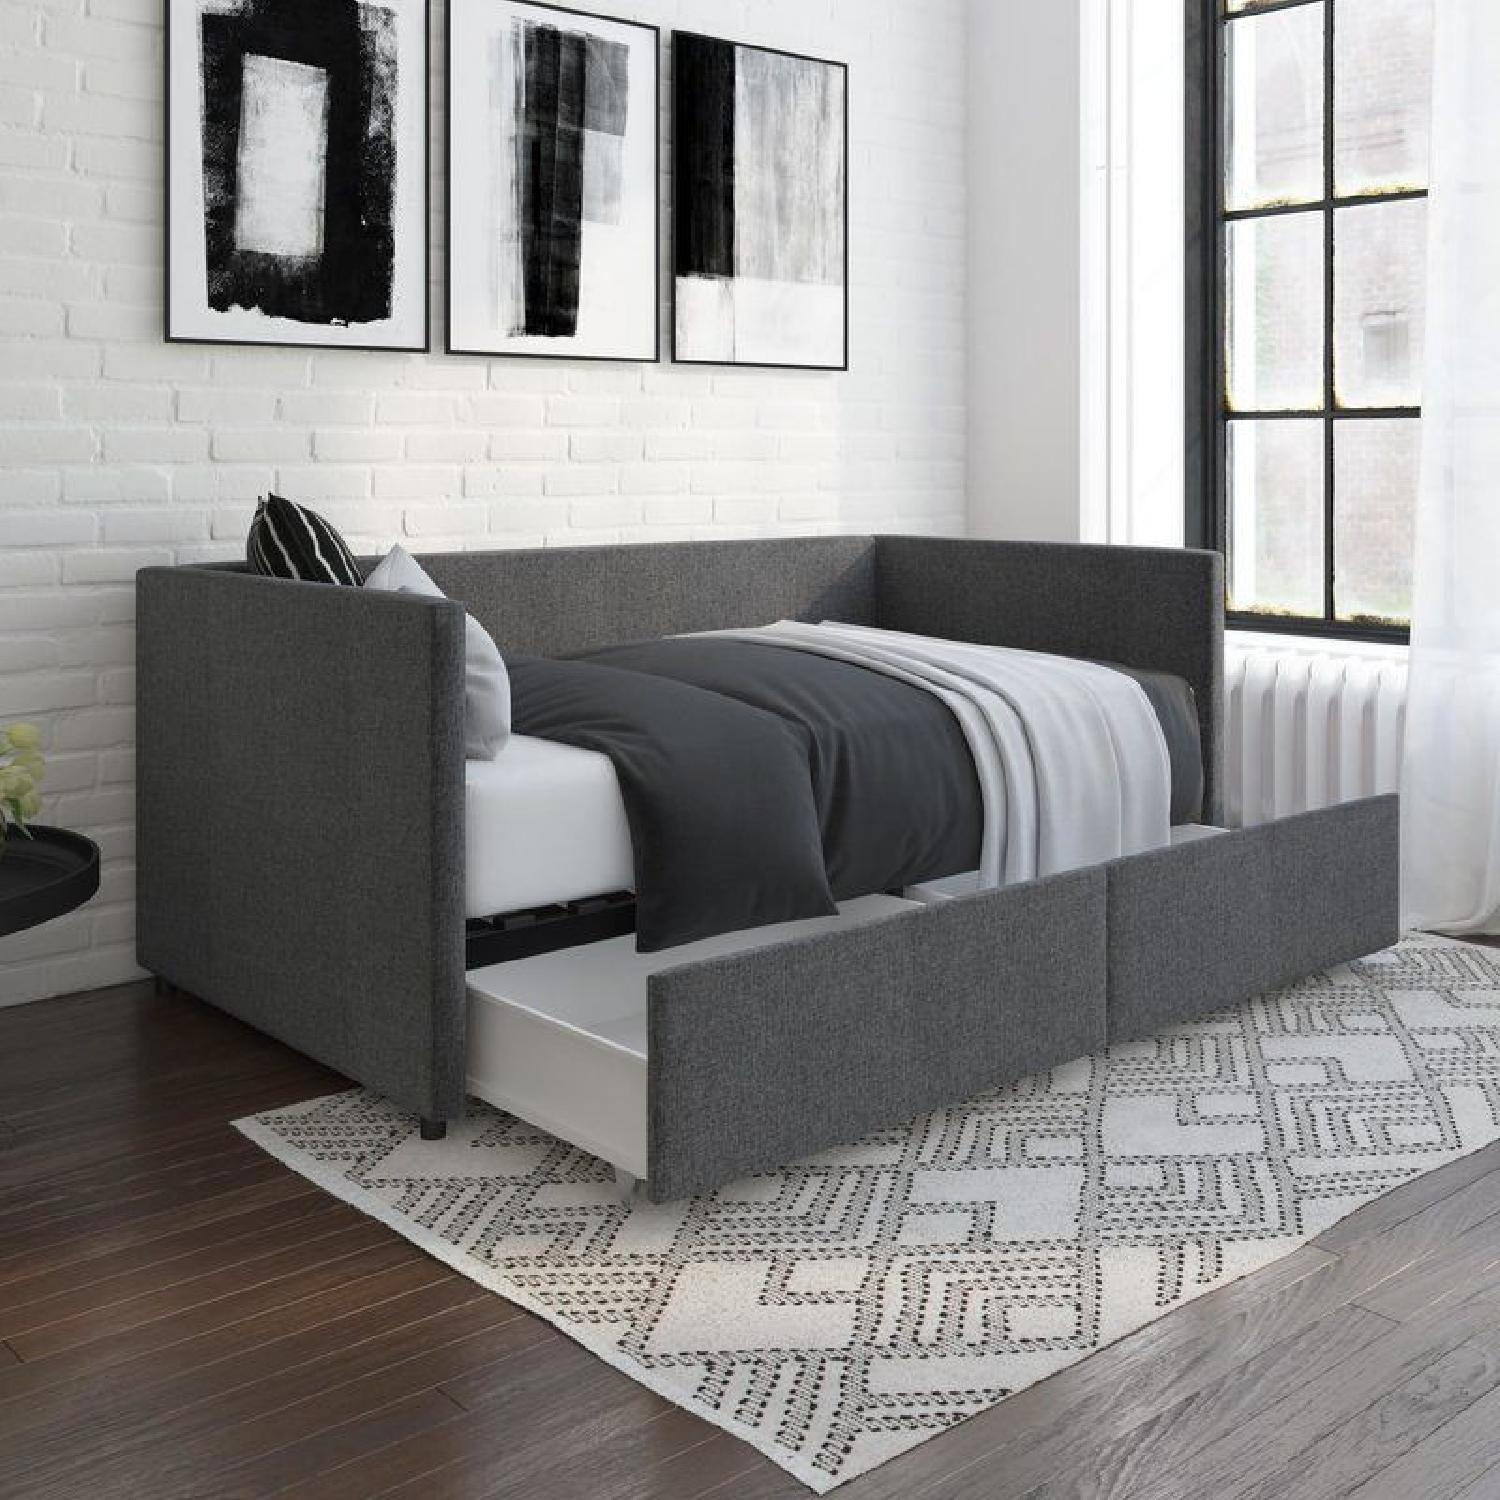 Carnforth Daybed w/ Storage Drawers - image-5